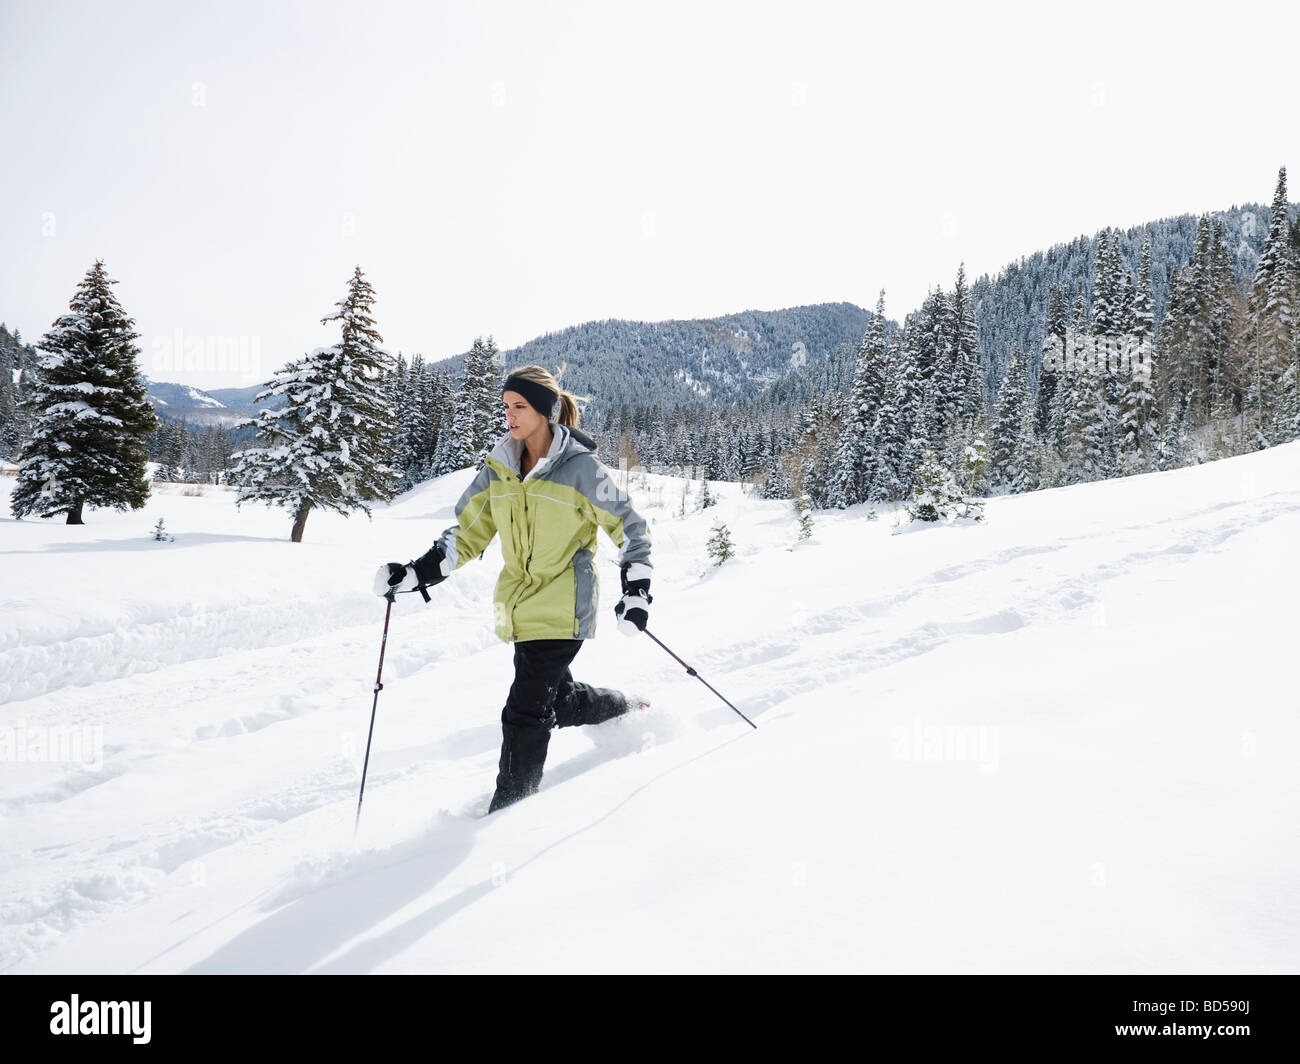 A woman snow shoeing - Stock Image